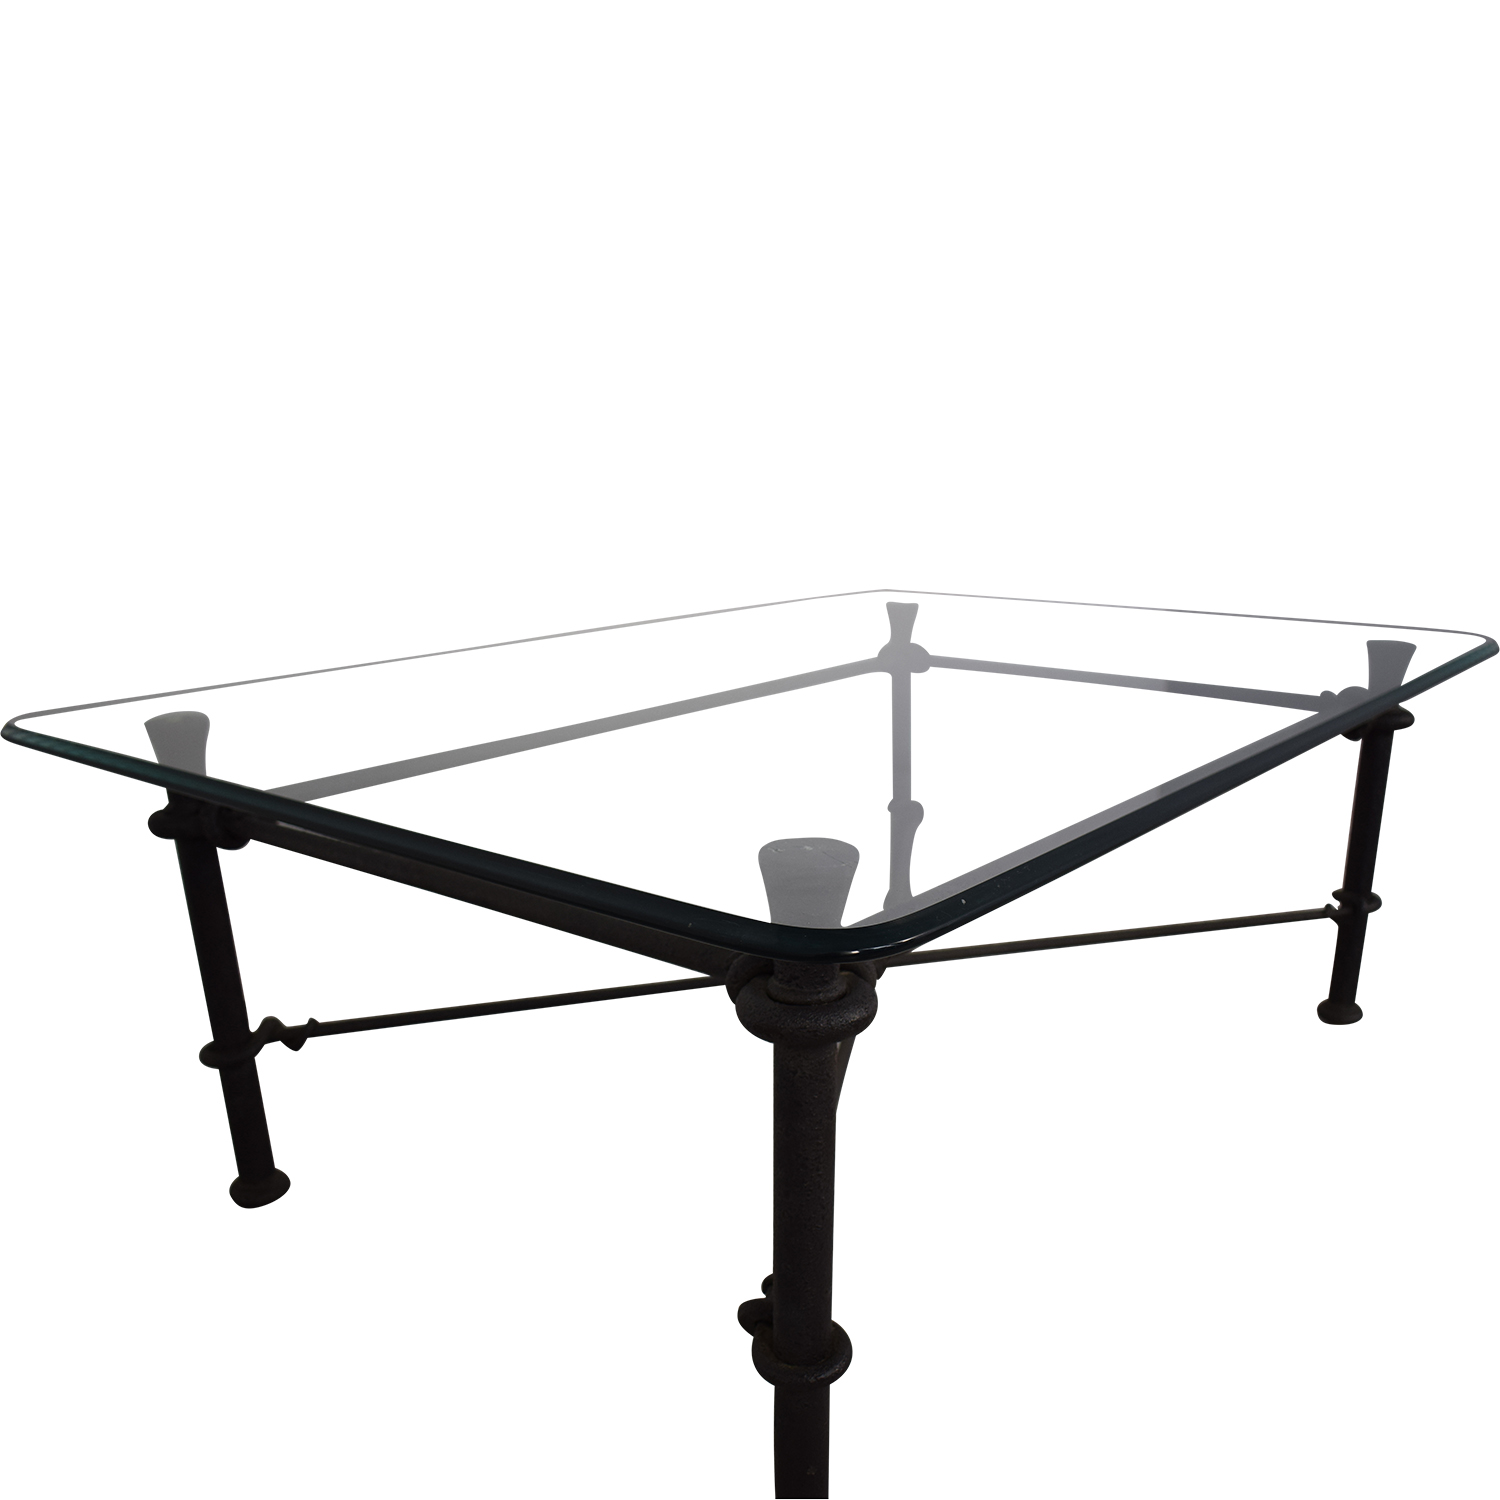 Ethan Allen Ethan Allen Glass Coffee Table with Iron Base nyc